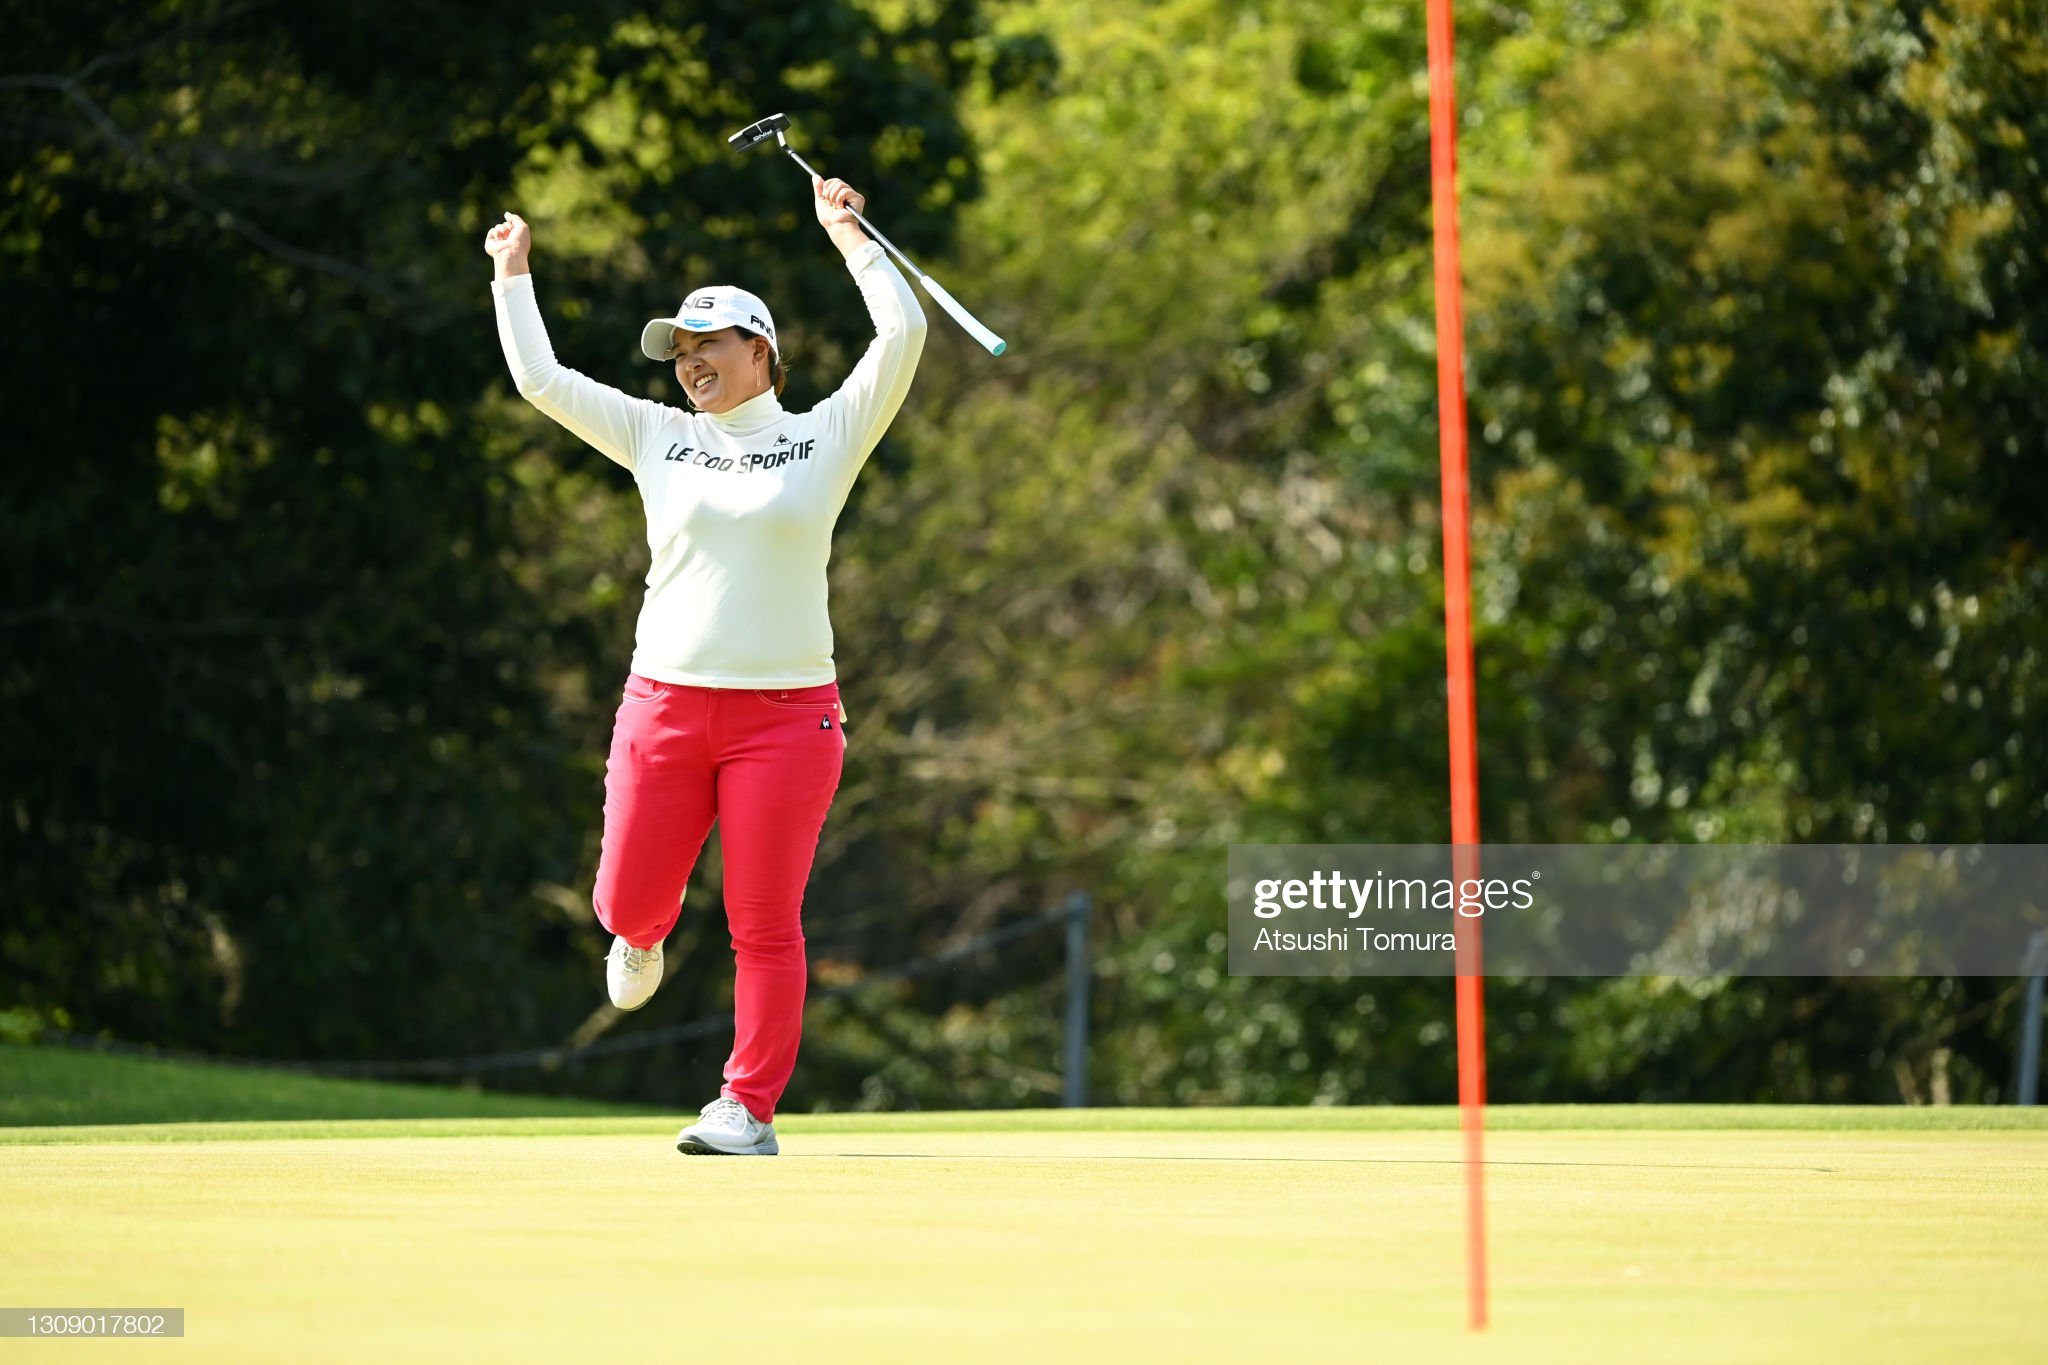 https://media.gettyimages.com/photos/ai-suzuki-of-japan-celebrates-on-the-15th-green-during-the-proam-of-picture-id1309017802?s=2048x2048